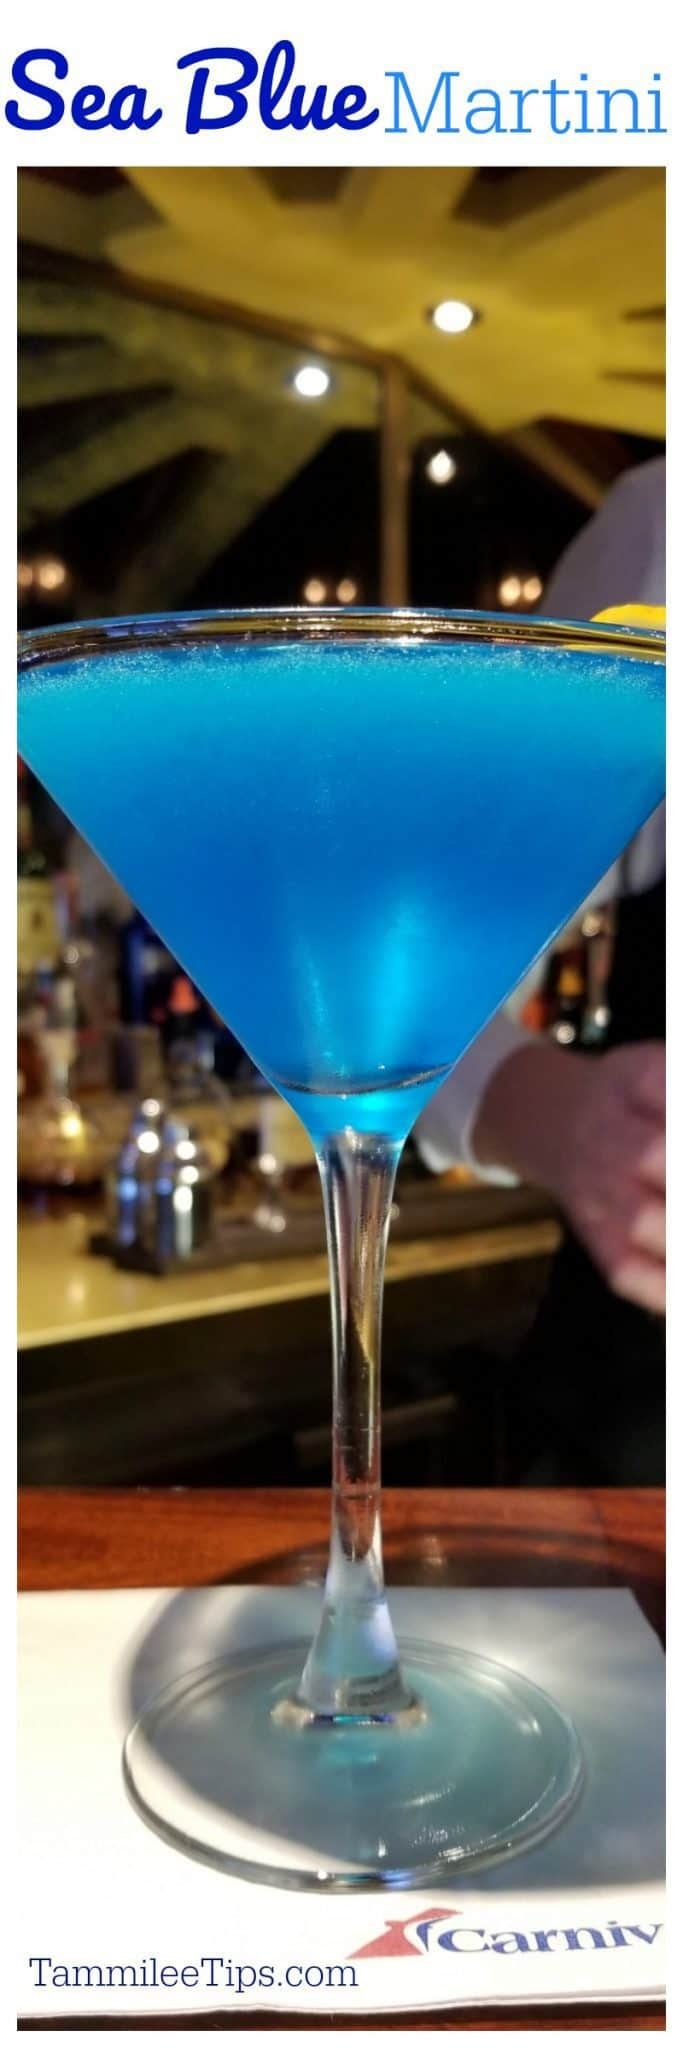 This Sea Blue Martini Recipe is super easy to make and perfect for holiday parties or dinner parties. Surprise your guests with a delicious citrus martini they will love! #cocktail #recipe #martini